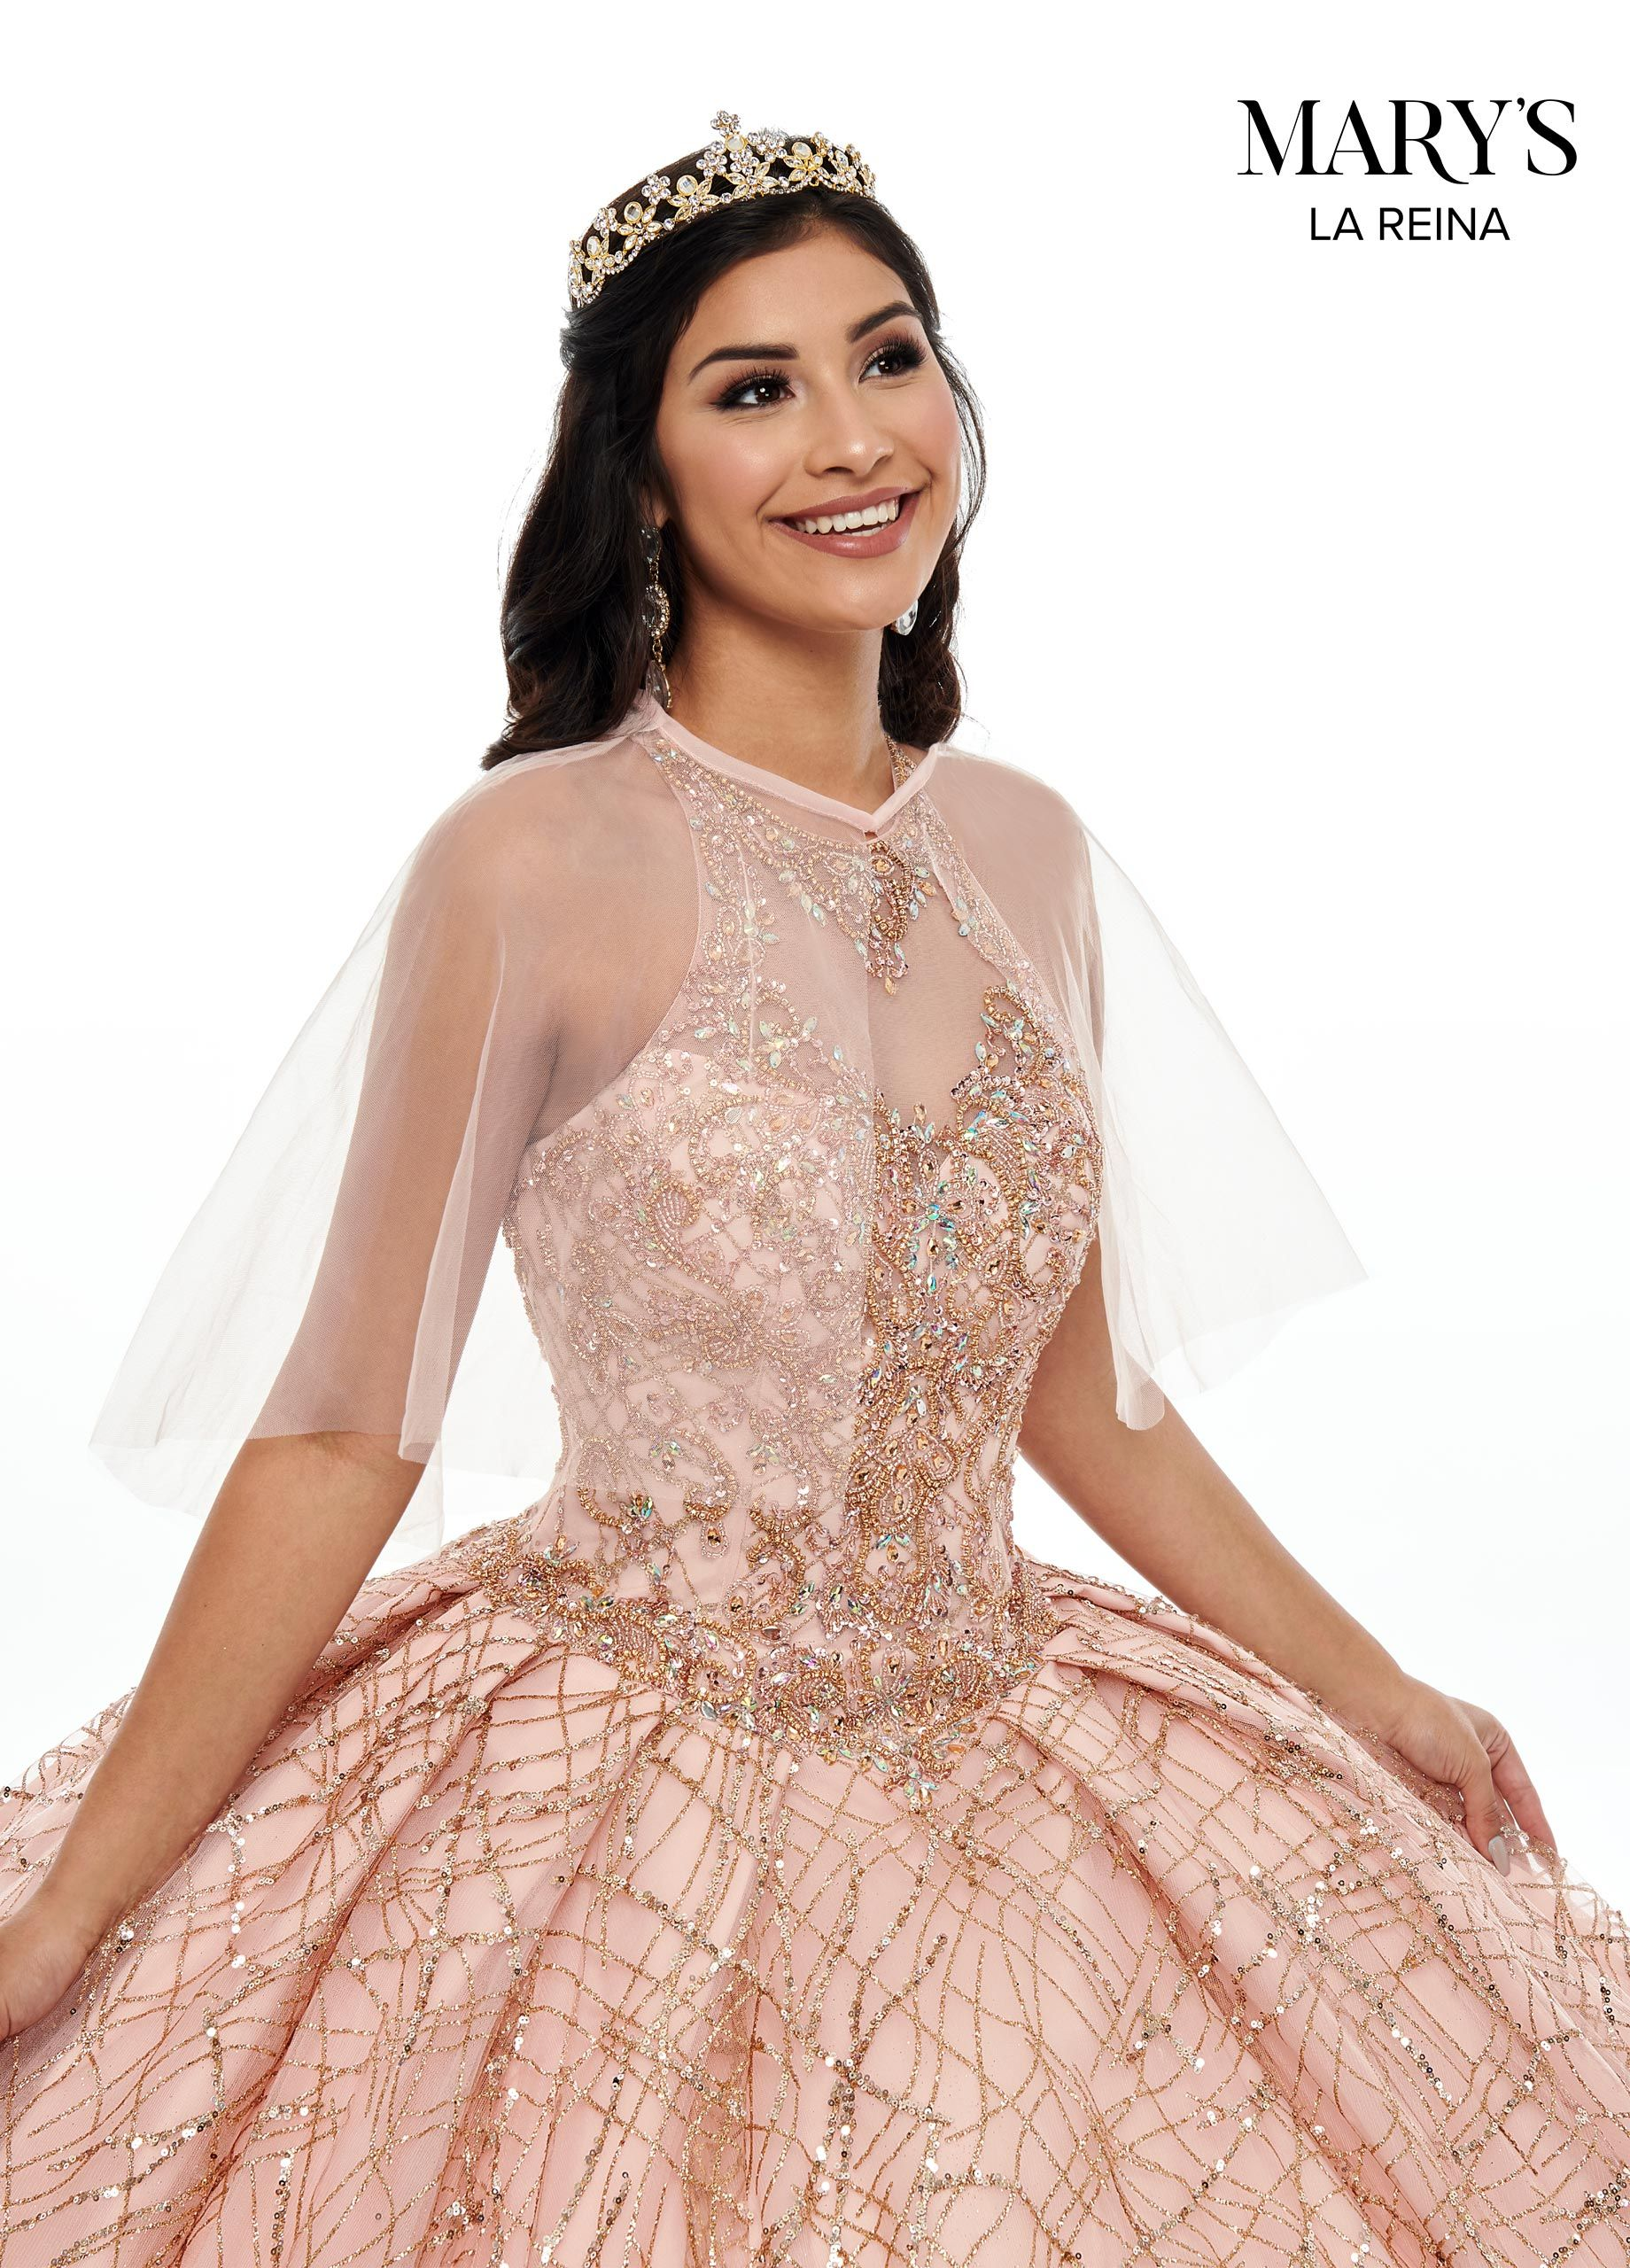 200 Rose Gold Quinceanera Ideas In 2021 Rose Gold Quinceanera Dresses Quinceanera Quinceanera Dresses